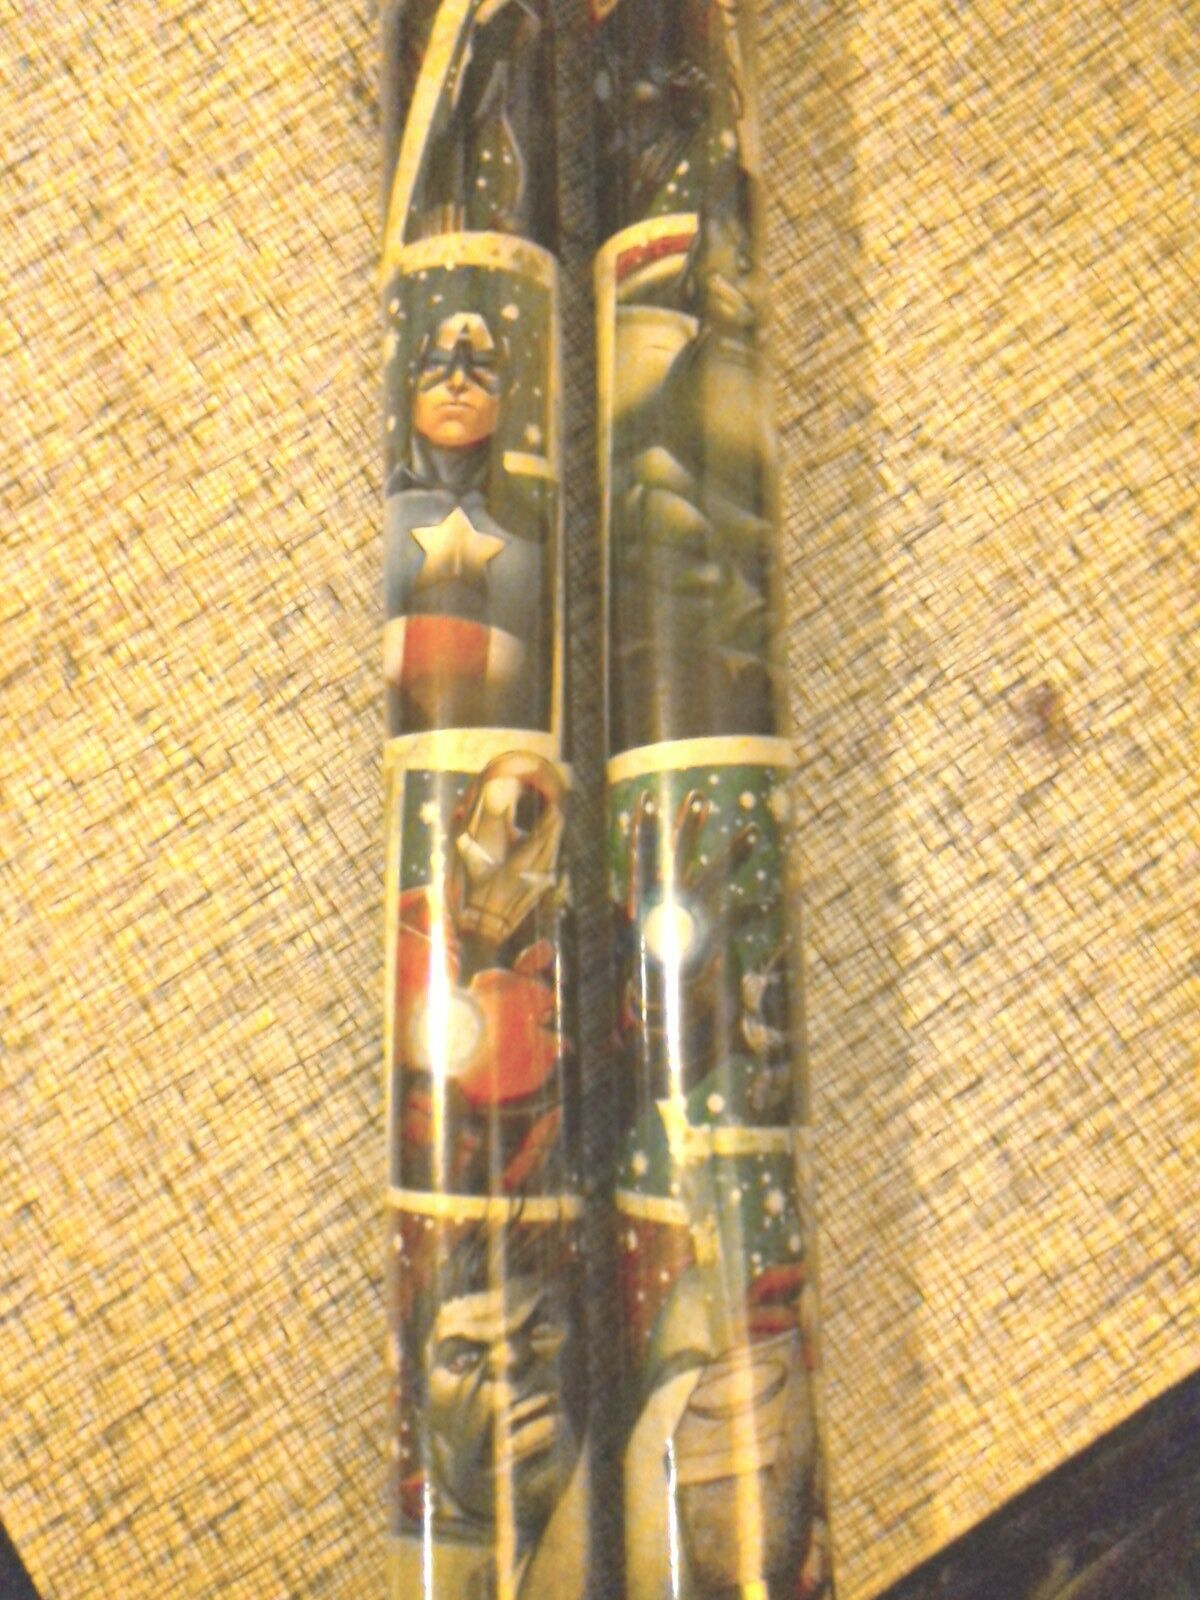 Avengers GIFT WRAP WRAPPING PAPER ROLL CHRISTMAS 40 SQ. FT